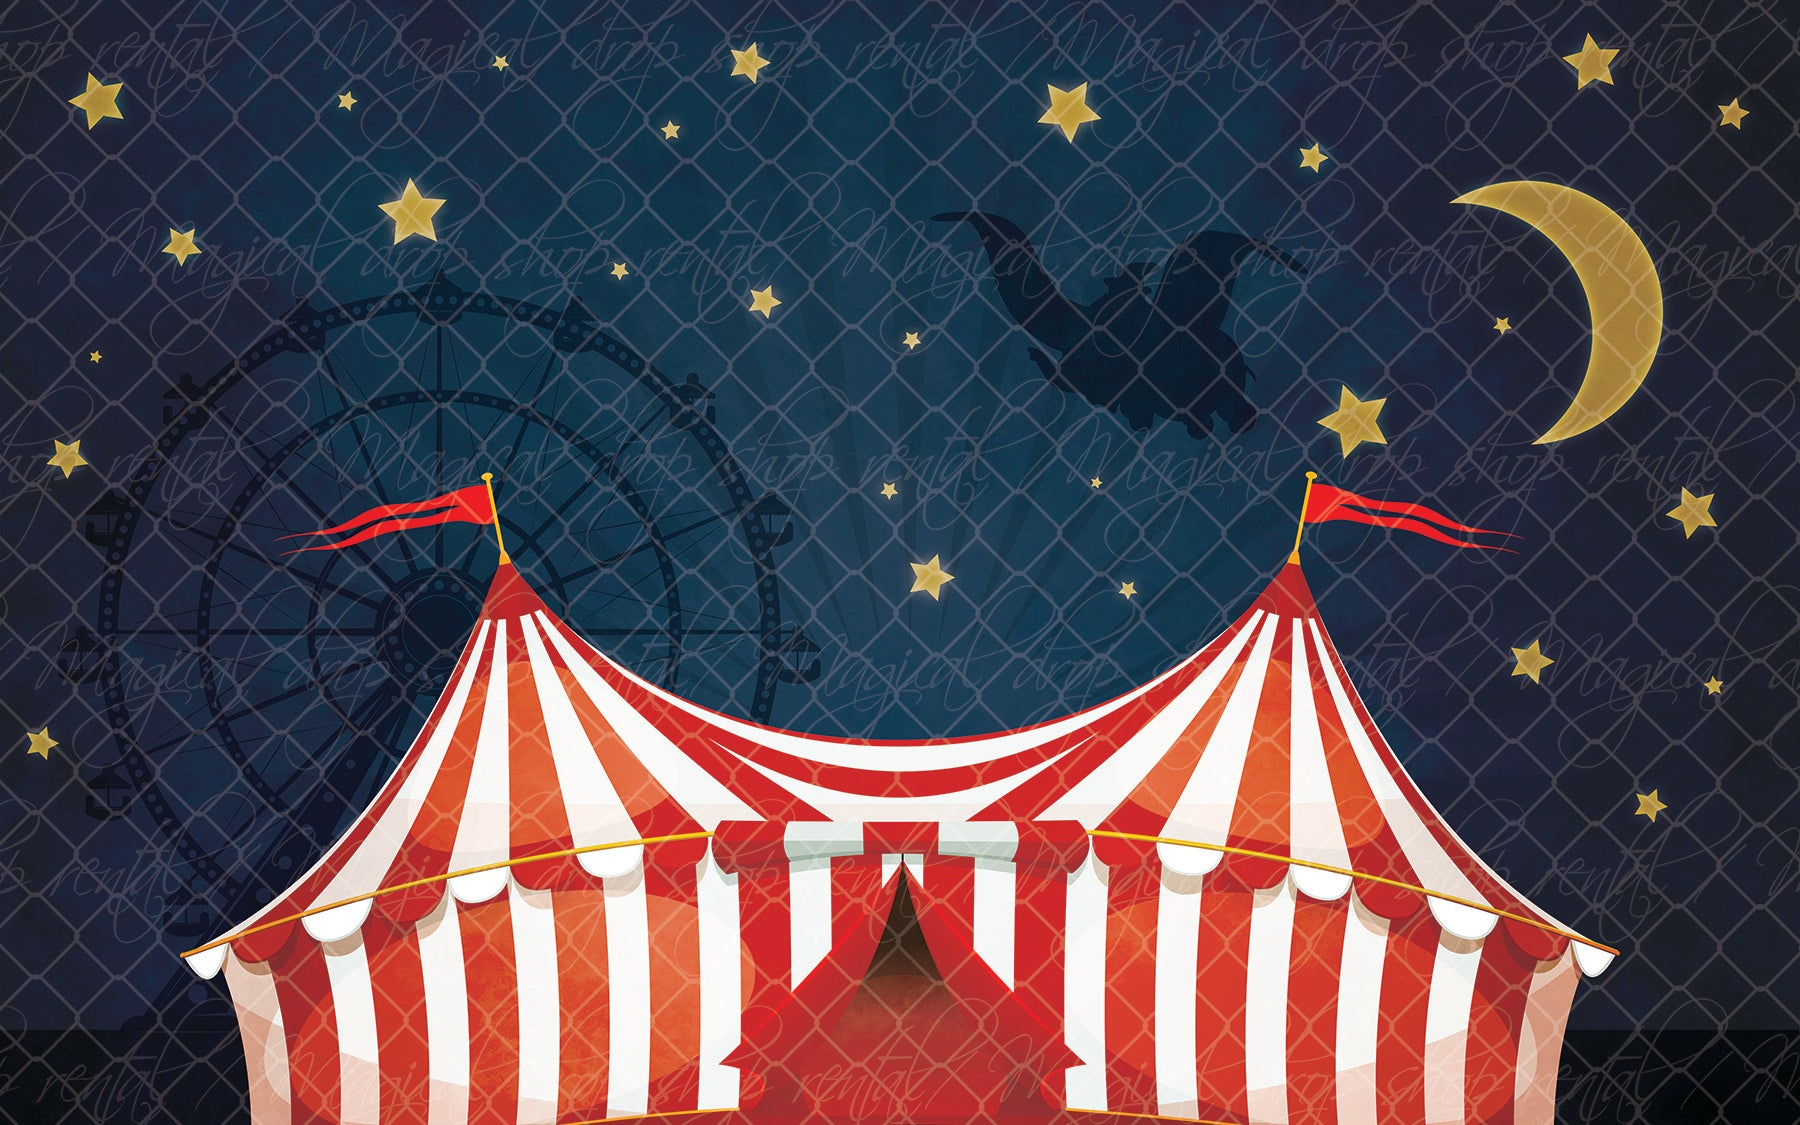 Night at the Circus